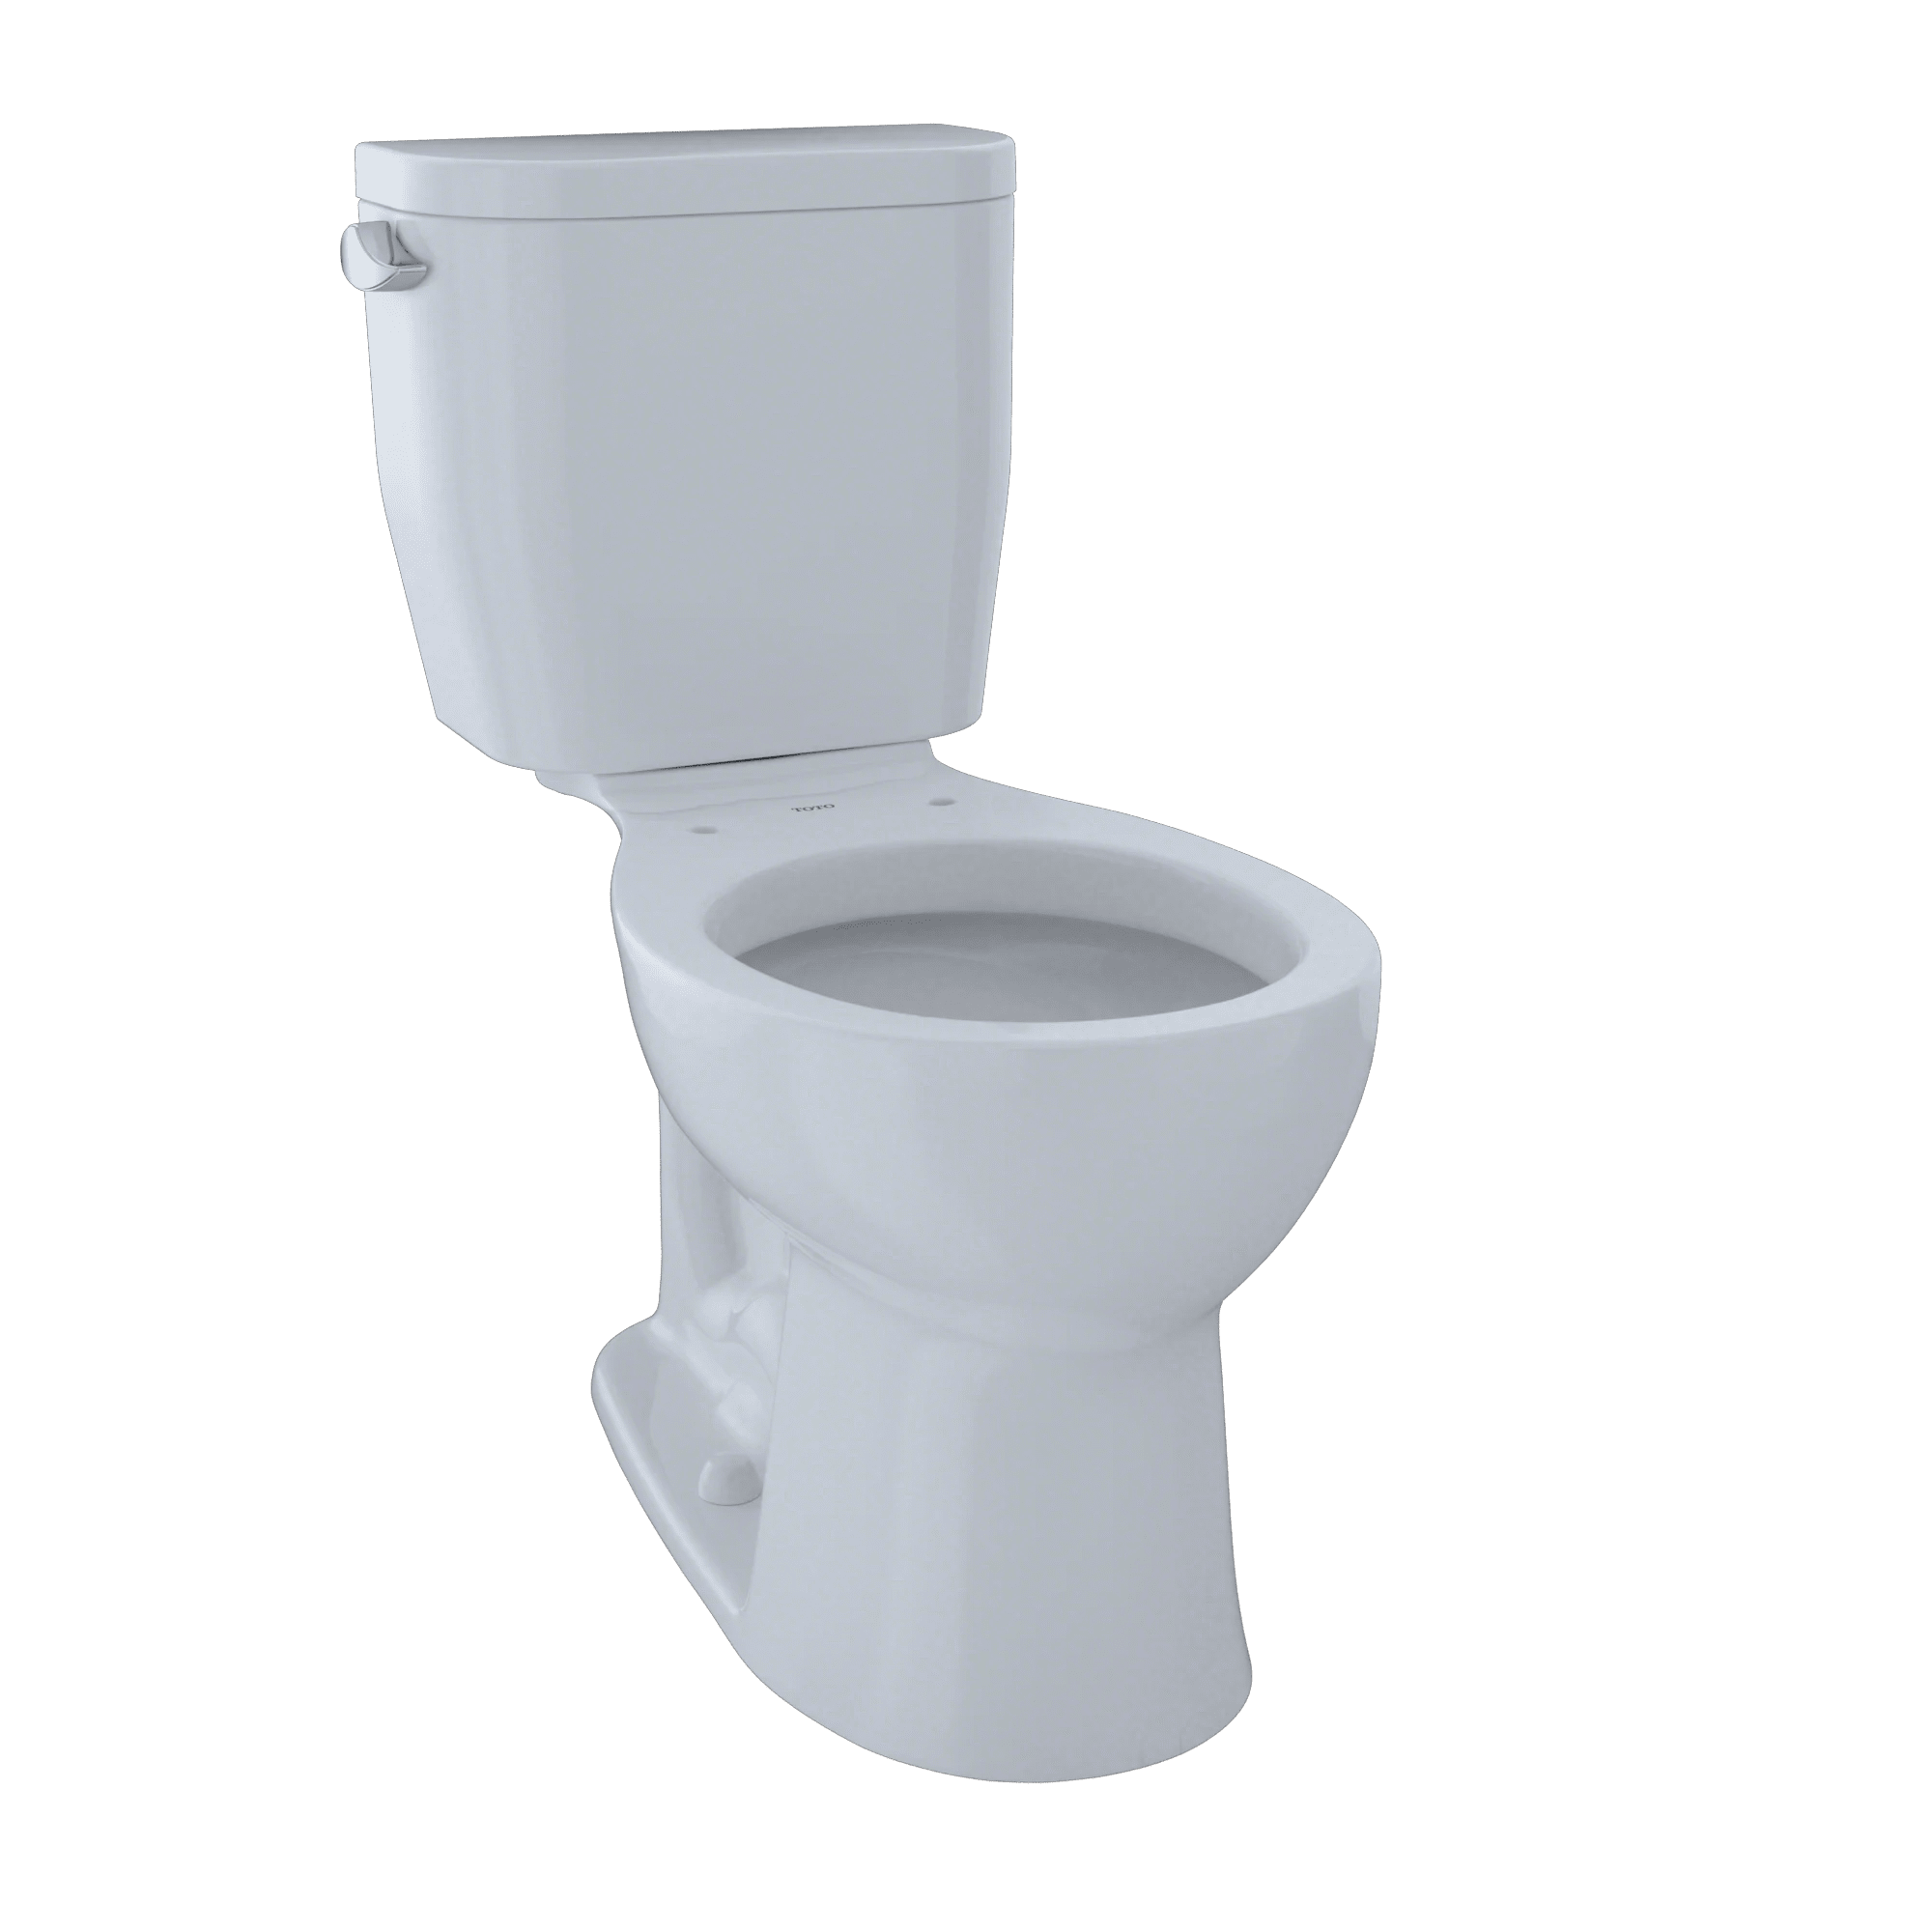 TOTO Entrada Two-Piece Round 1.28 GPF Universal Height Toilet, Cotton White CST243EF#01 by Toto